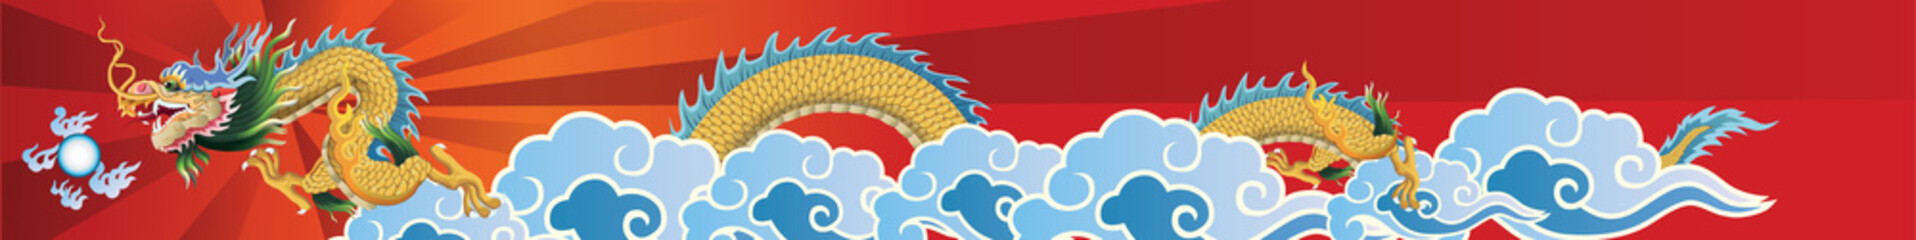 dragon flying on the sky